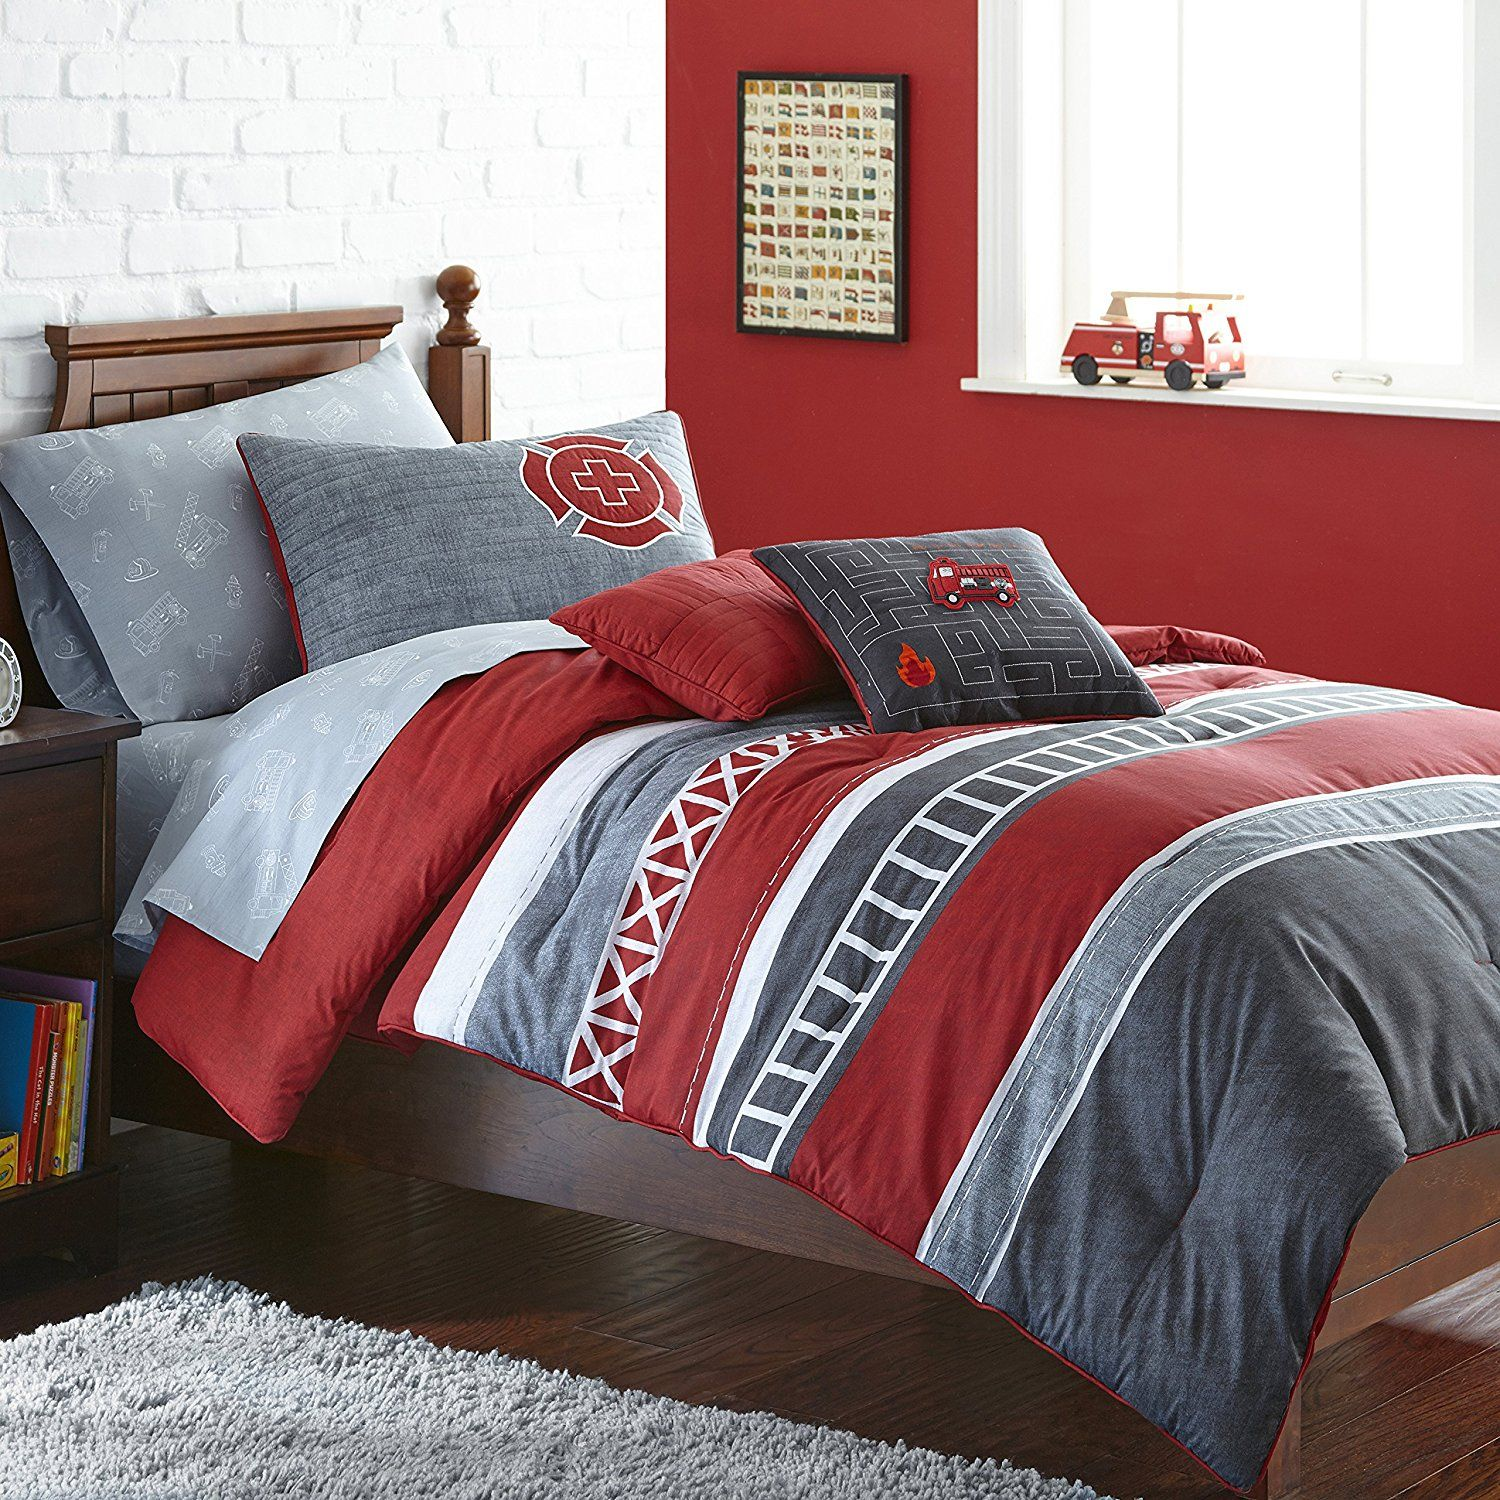 bed bag for buy pillows roxy toss auctions sets women in full and bedding pin heart a comforter soul